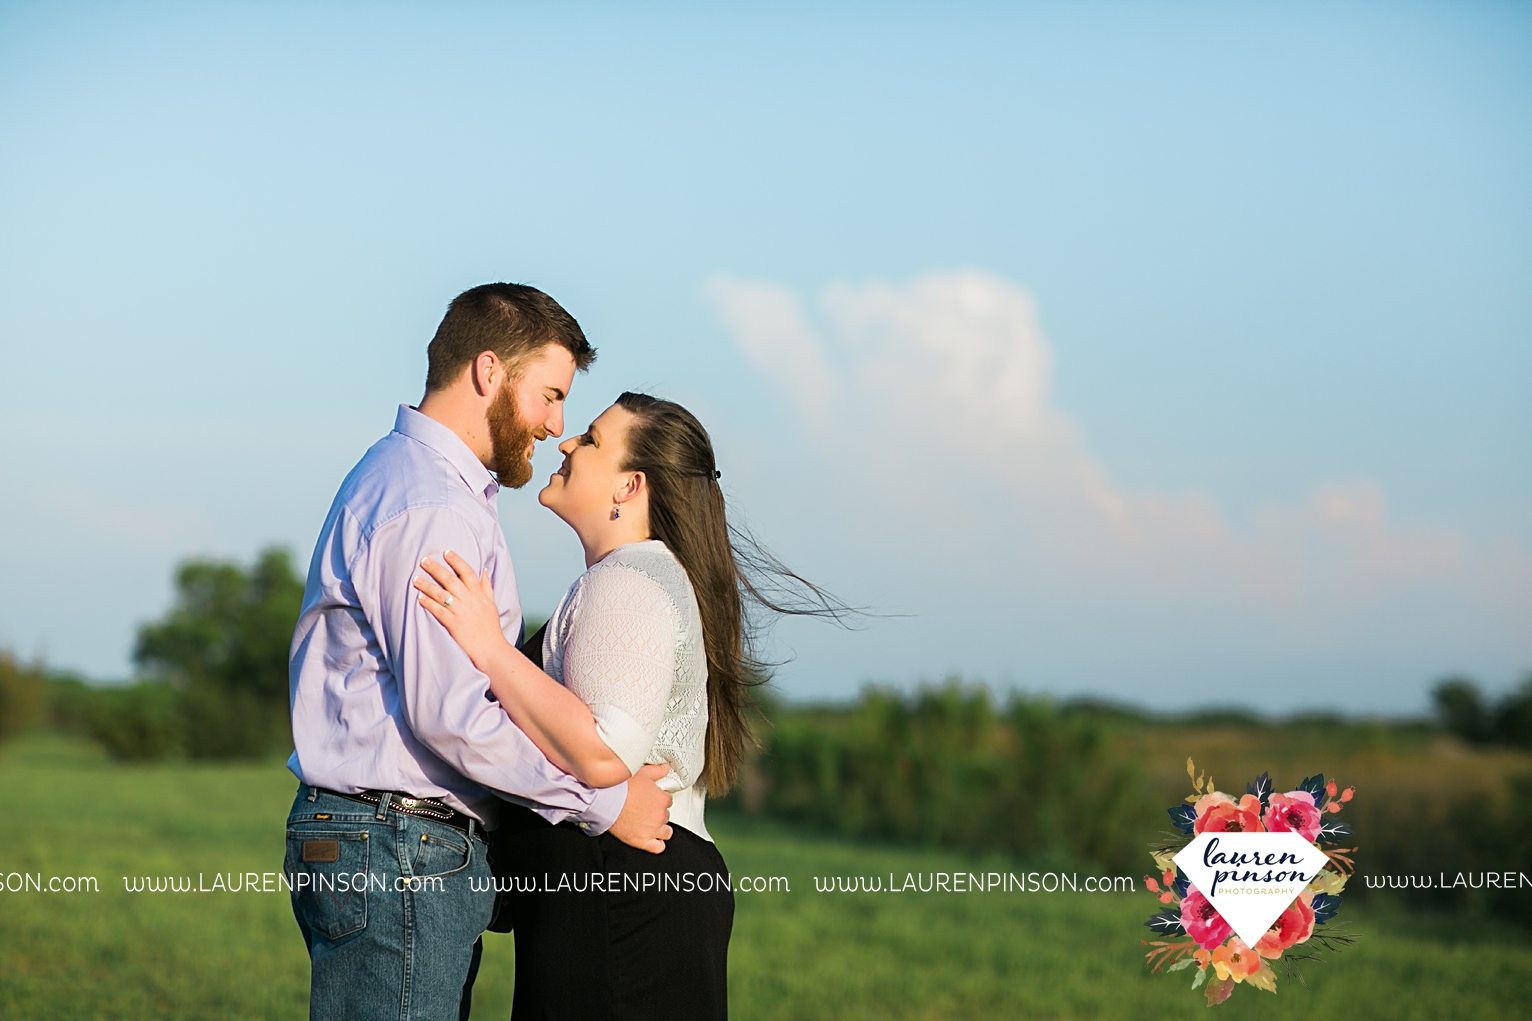 met-on-christian-mingle-texas-engagement-sesion-in-wichita-falls-00009.jpg